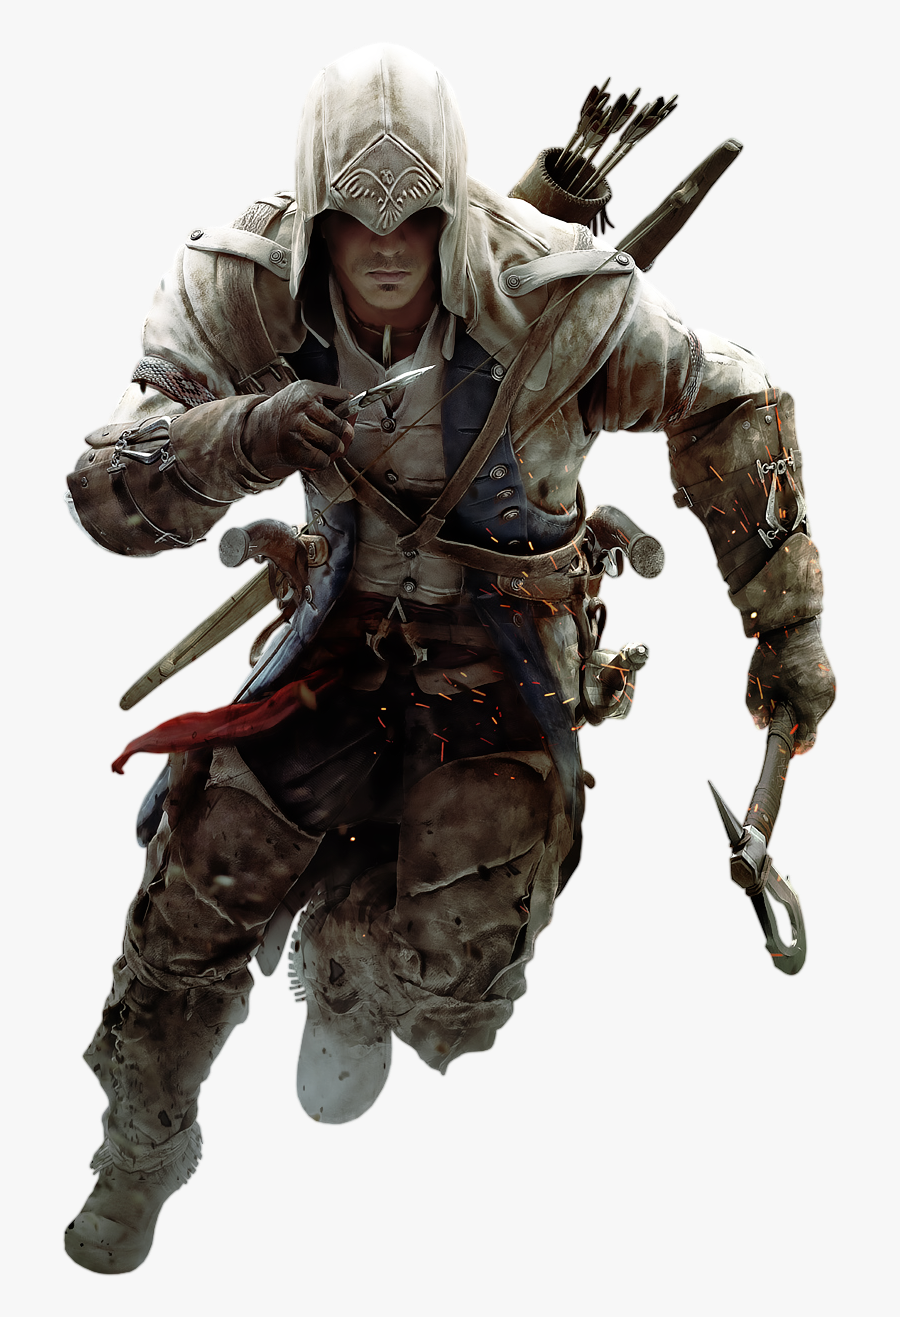 Assassins Creed Hd Png Transparent Assassins Creed Connor